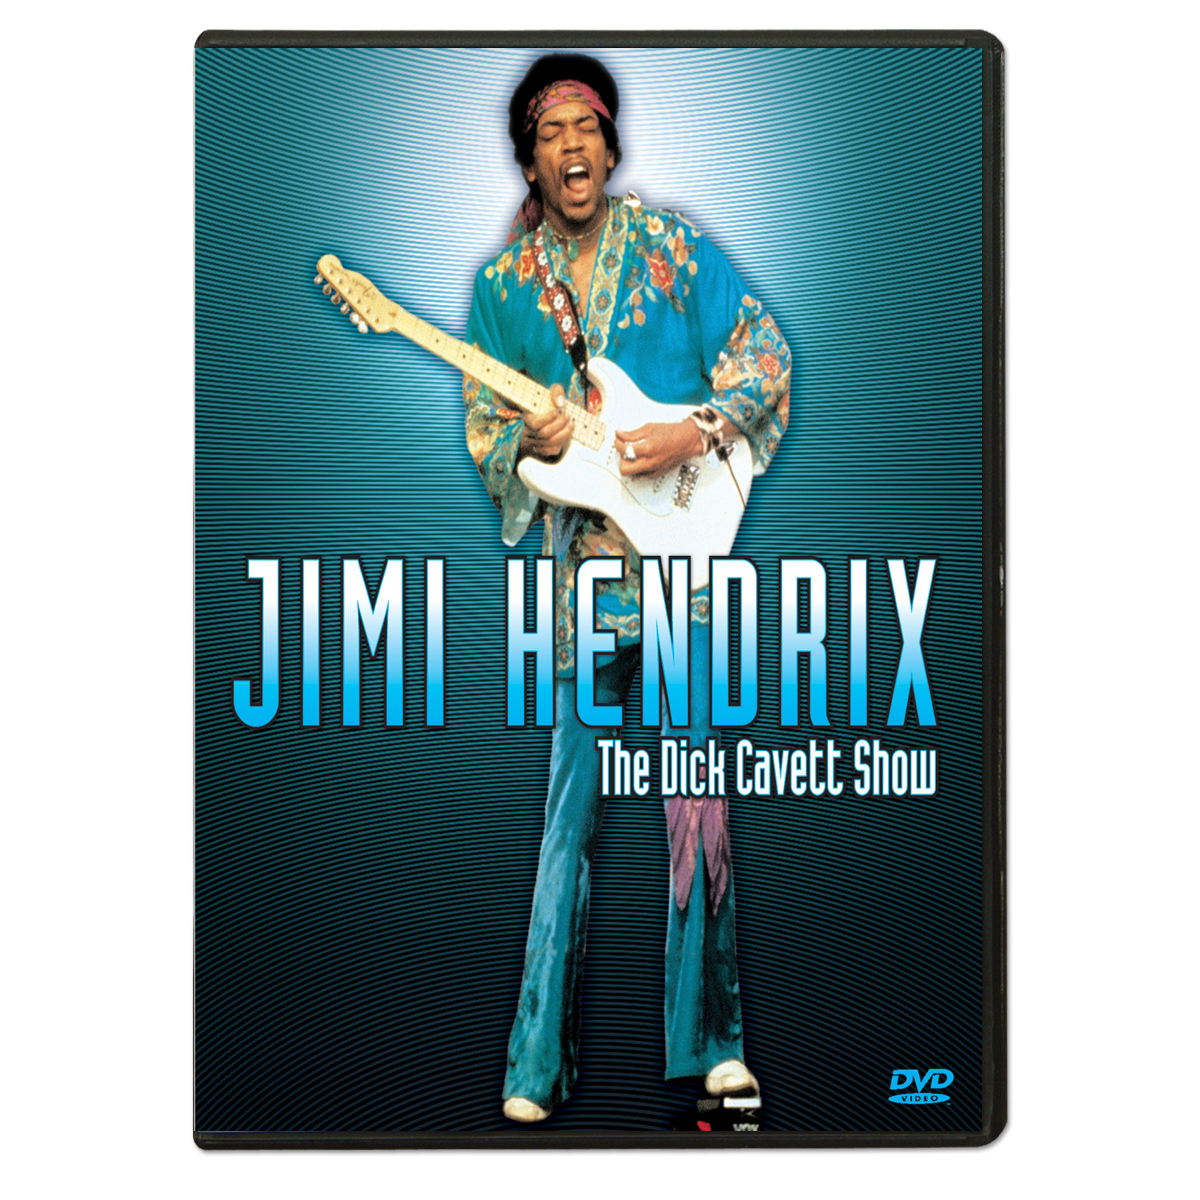 Jimi Hendrix: The Dick Cavett Show DVD (2011)